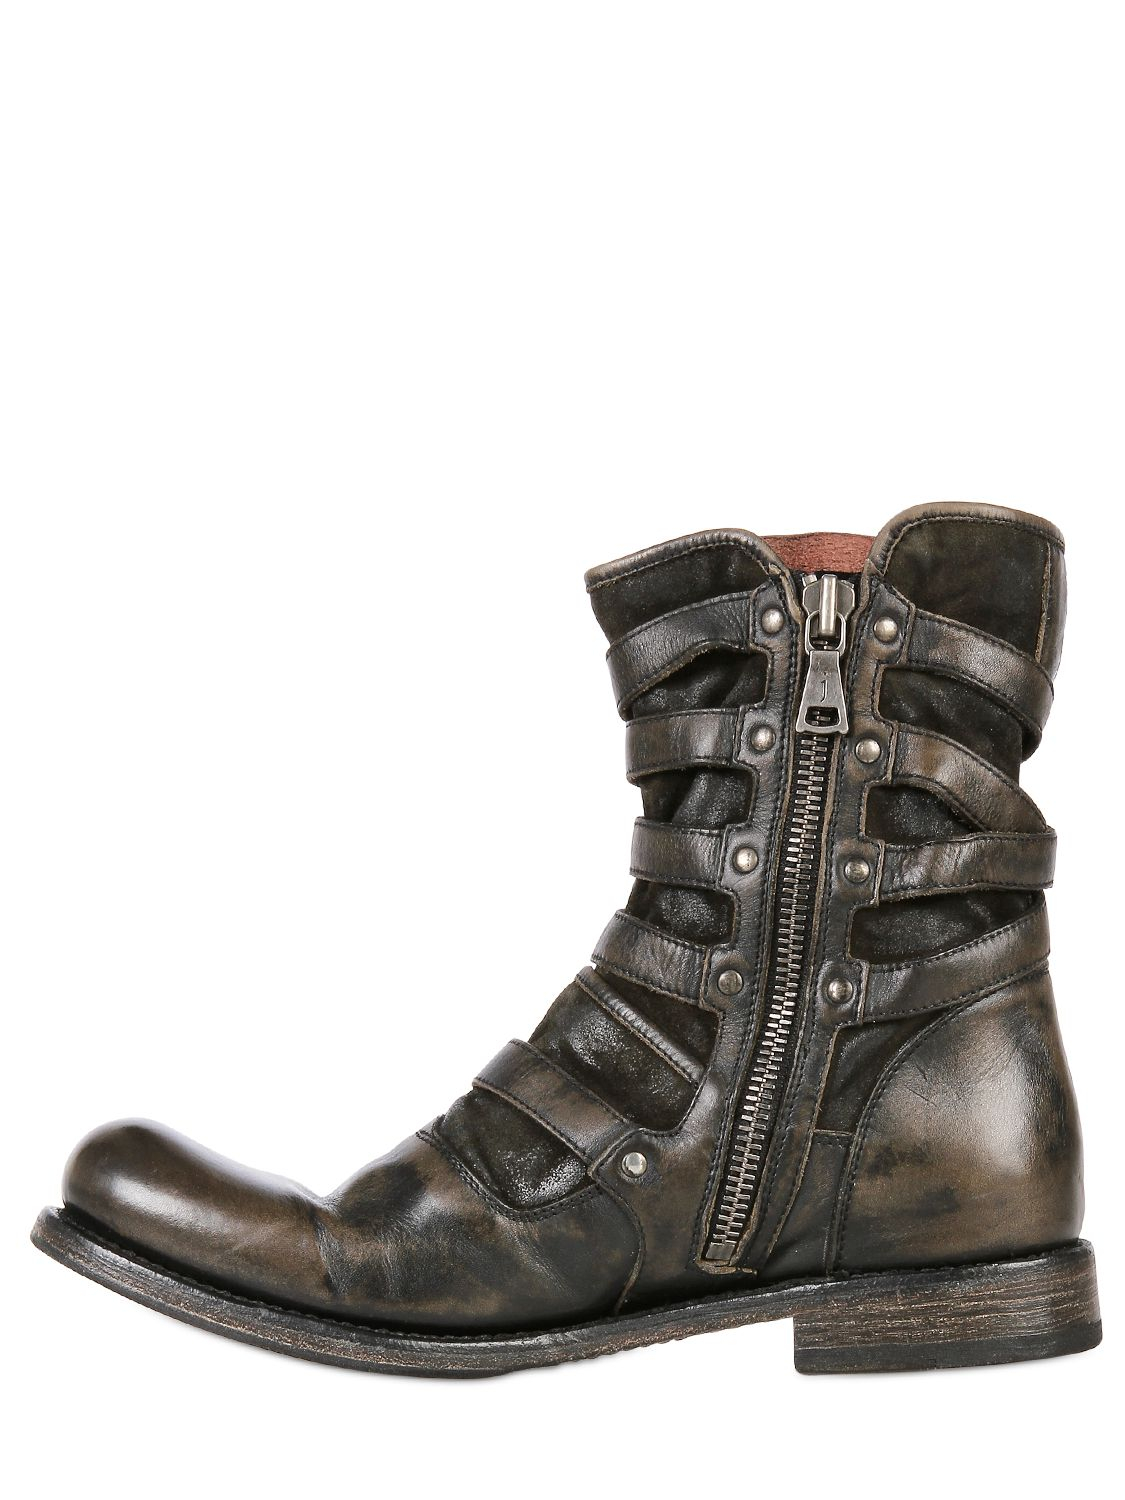 John Varvatos Triple Buckle Cordovan Leather Boots In